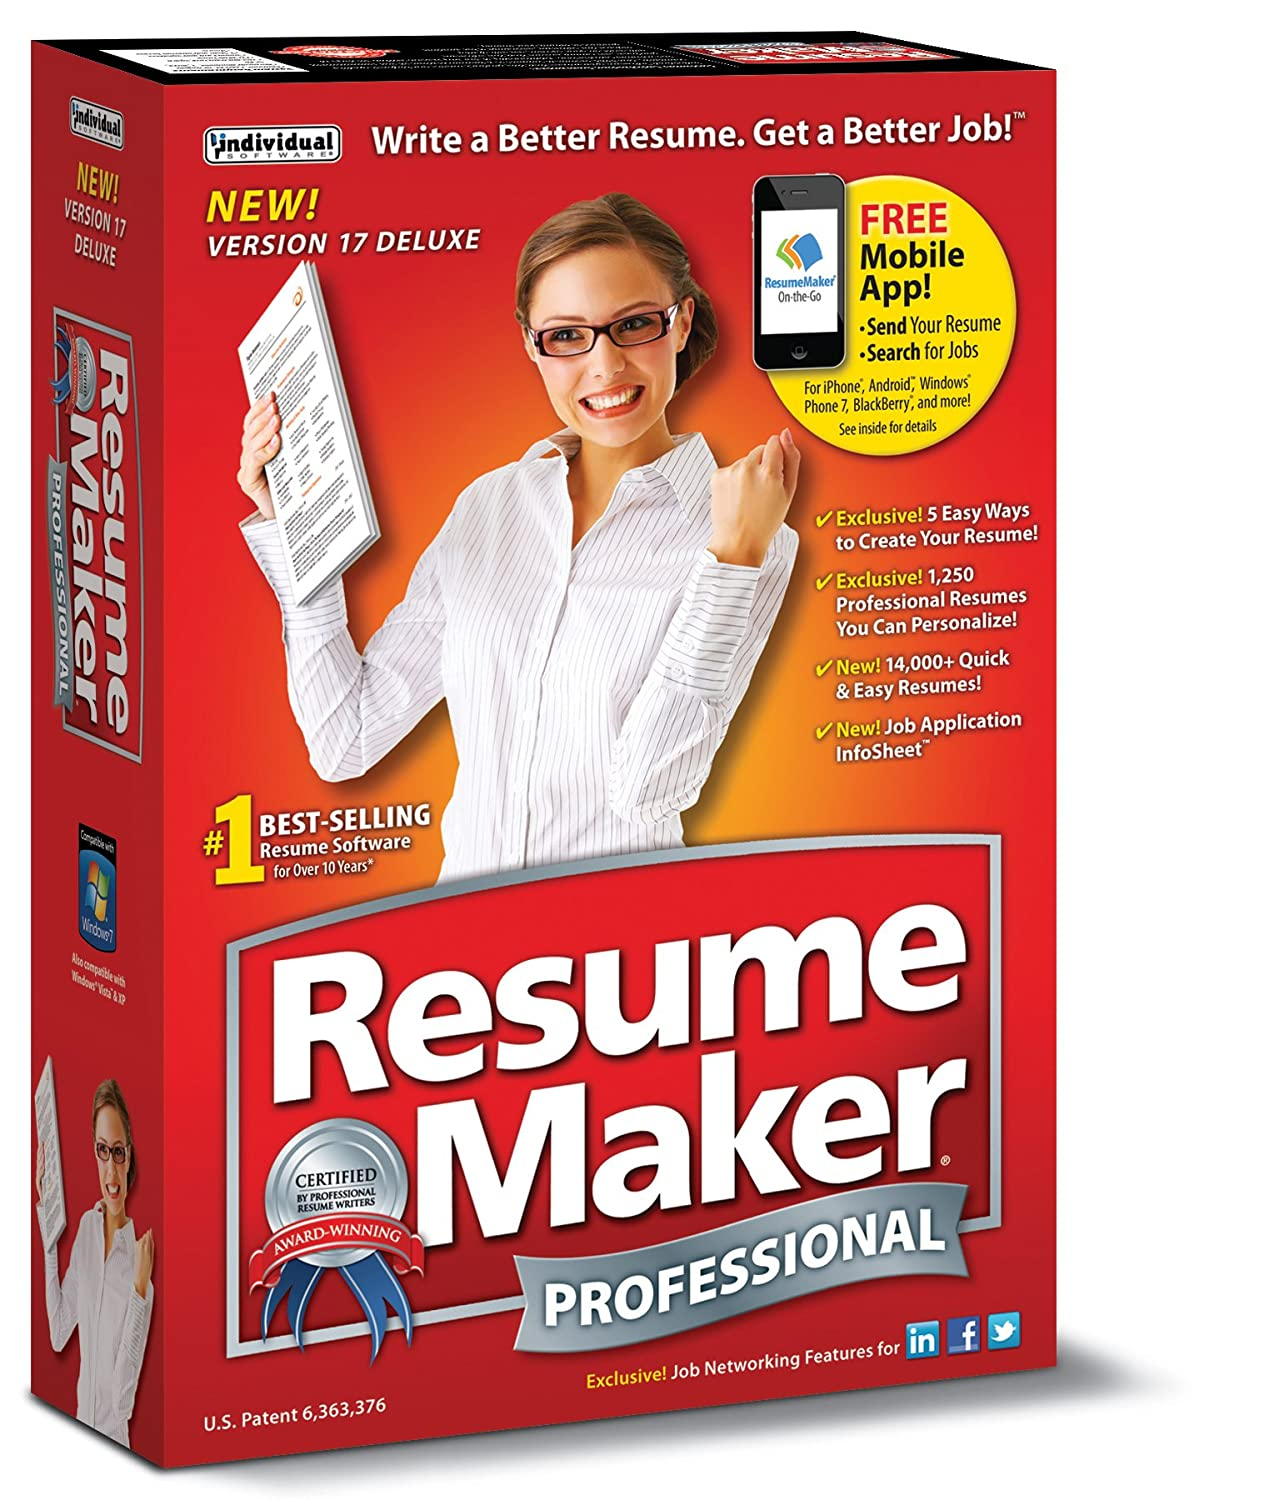 amazoncom resumemaker professional deluxe 17 download software - Resume Maker Software Download